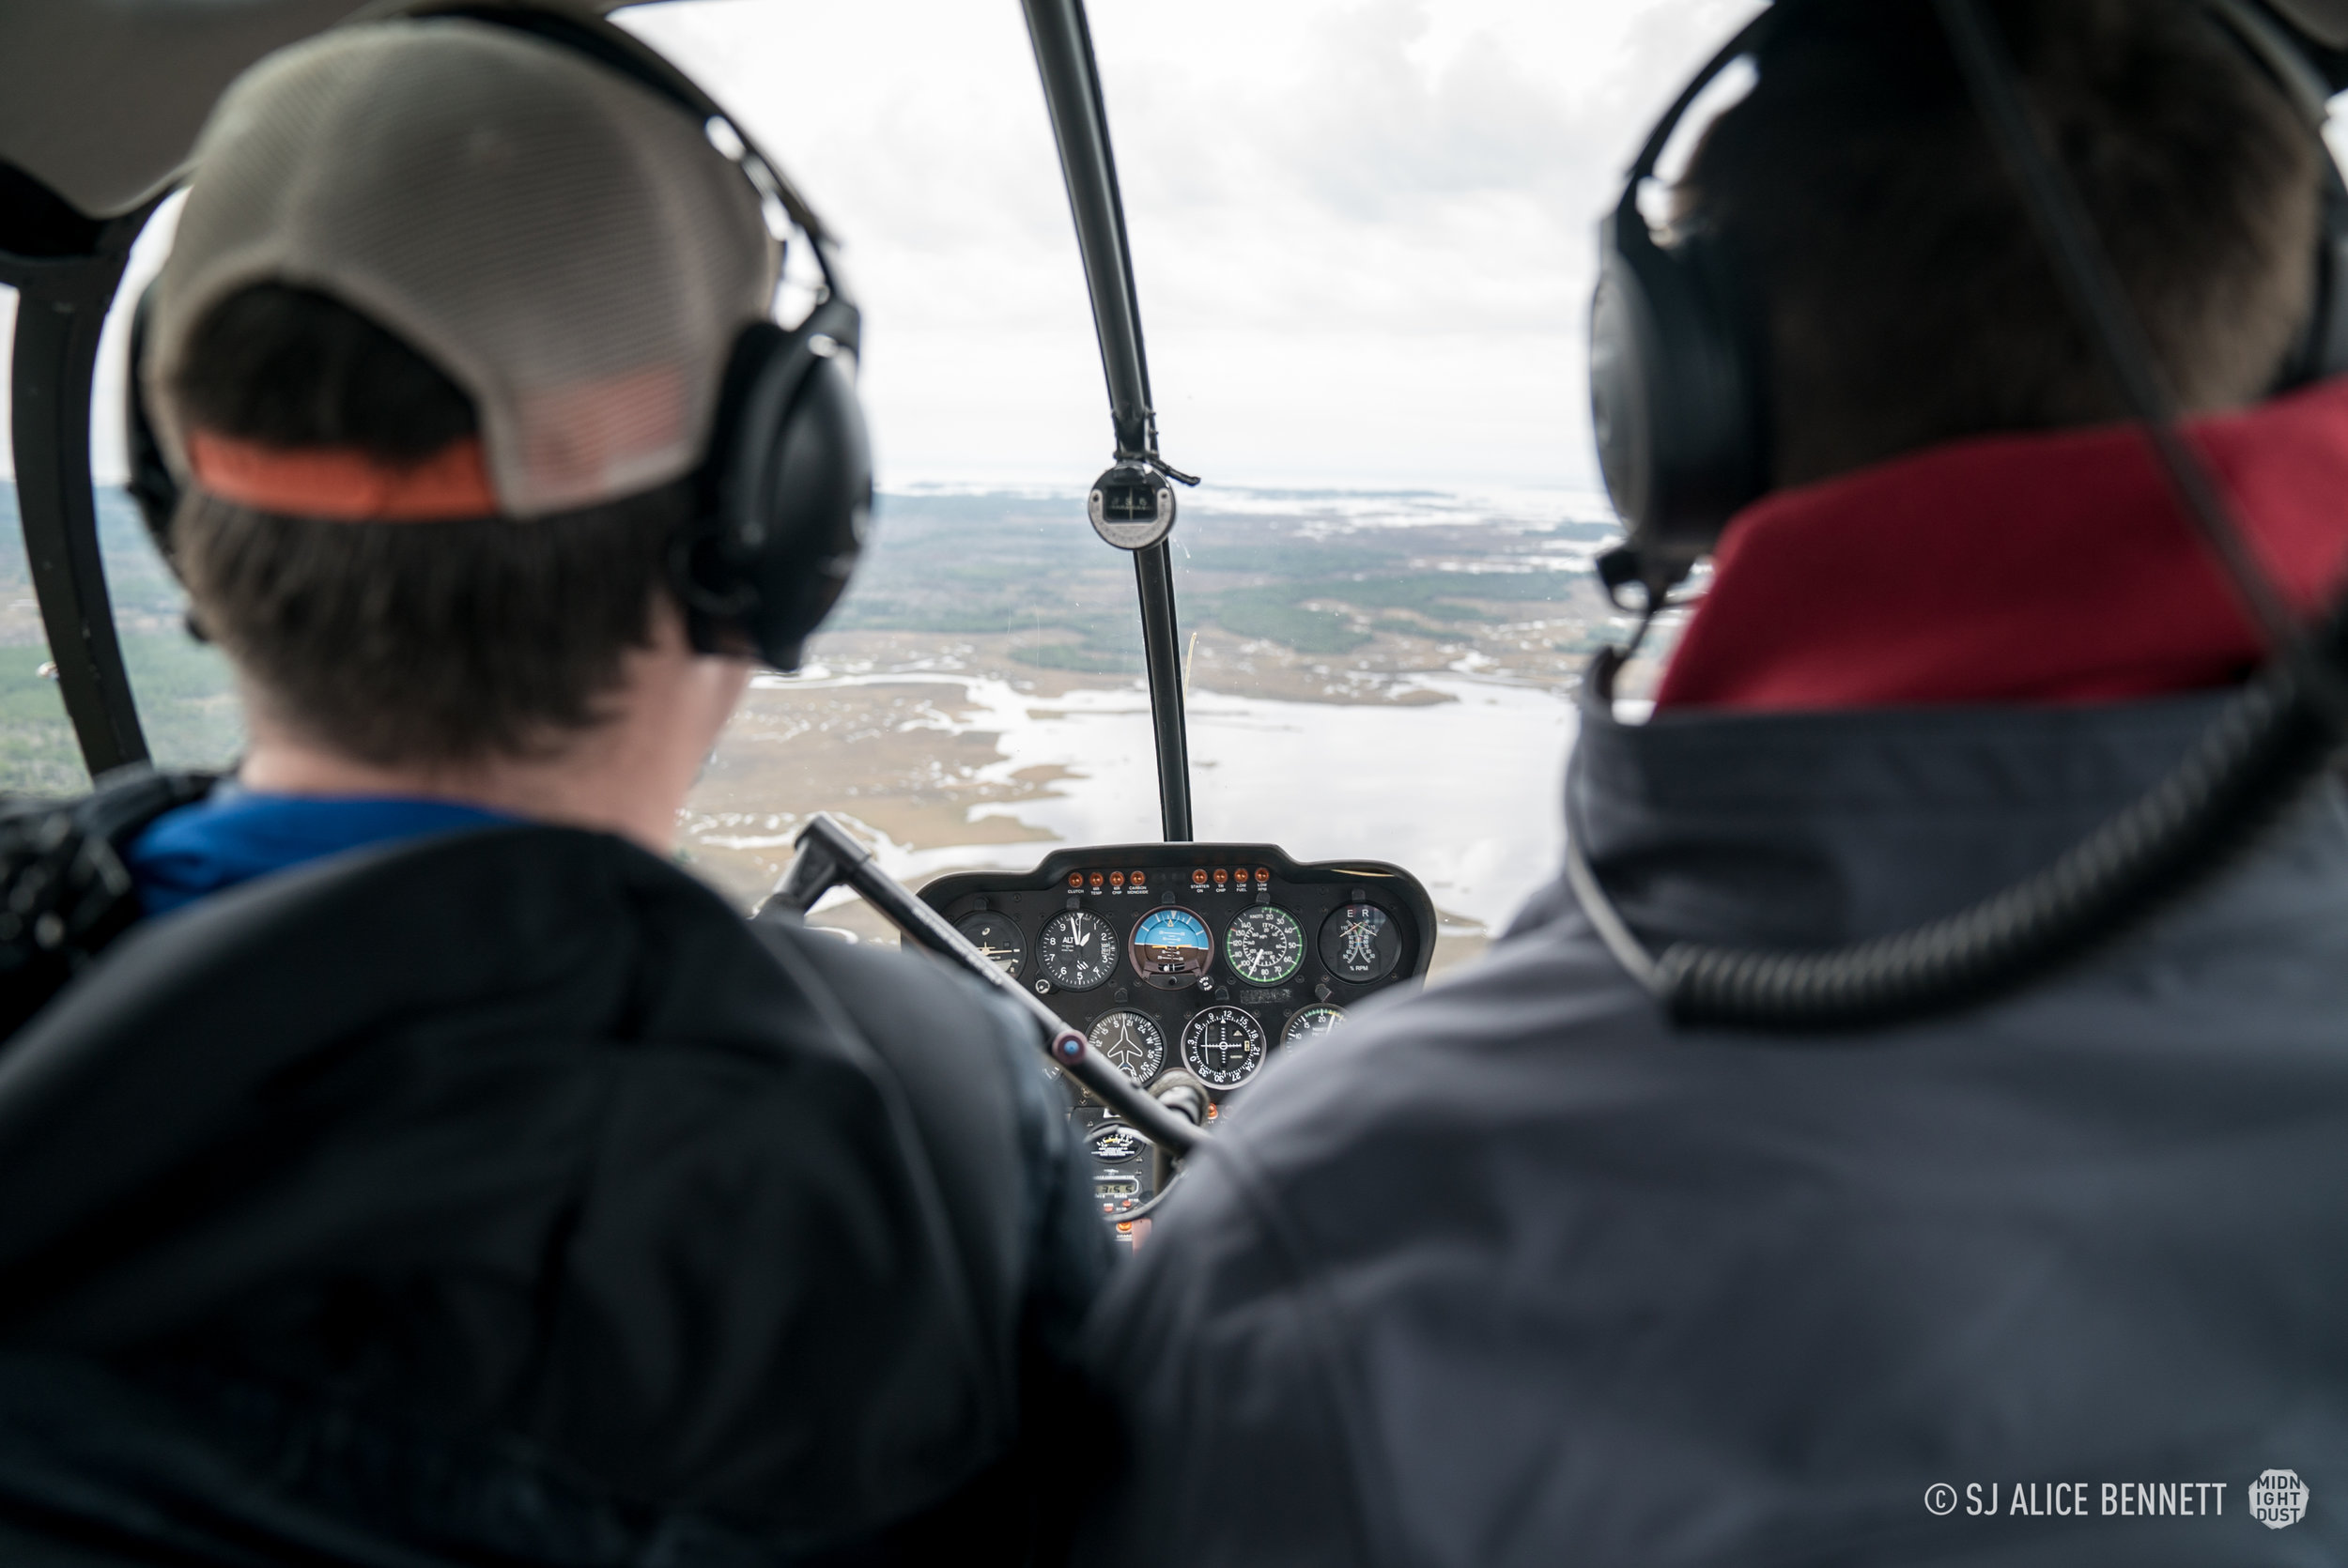 2018_12_19_Helicopter-54.jpg